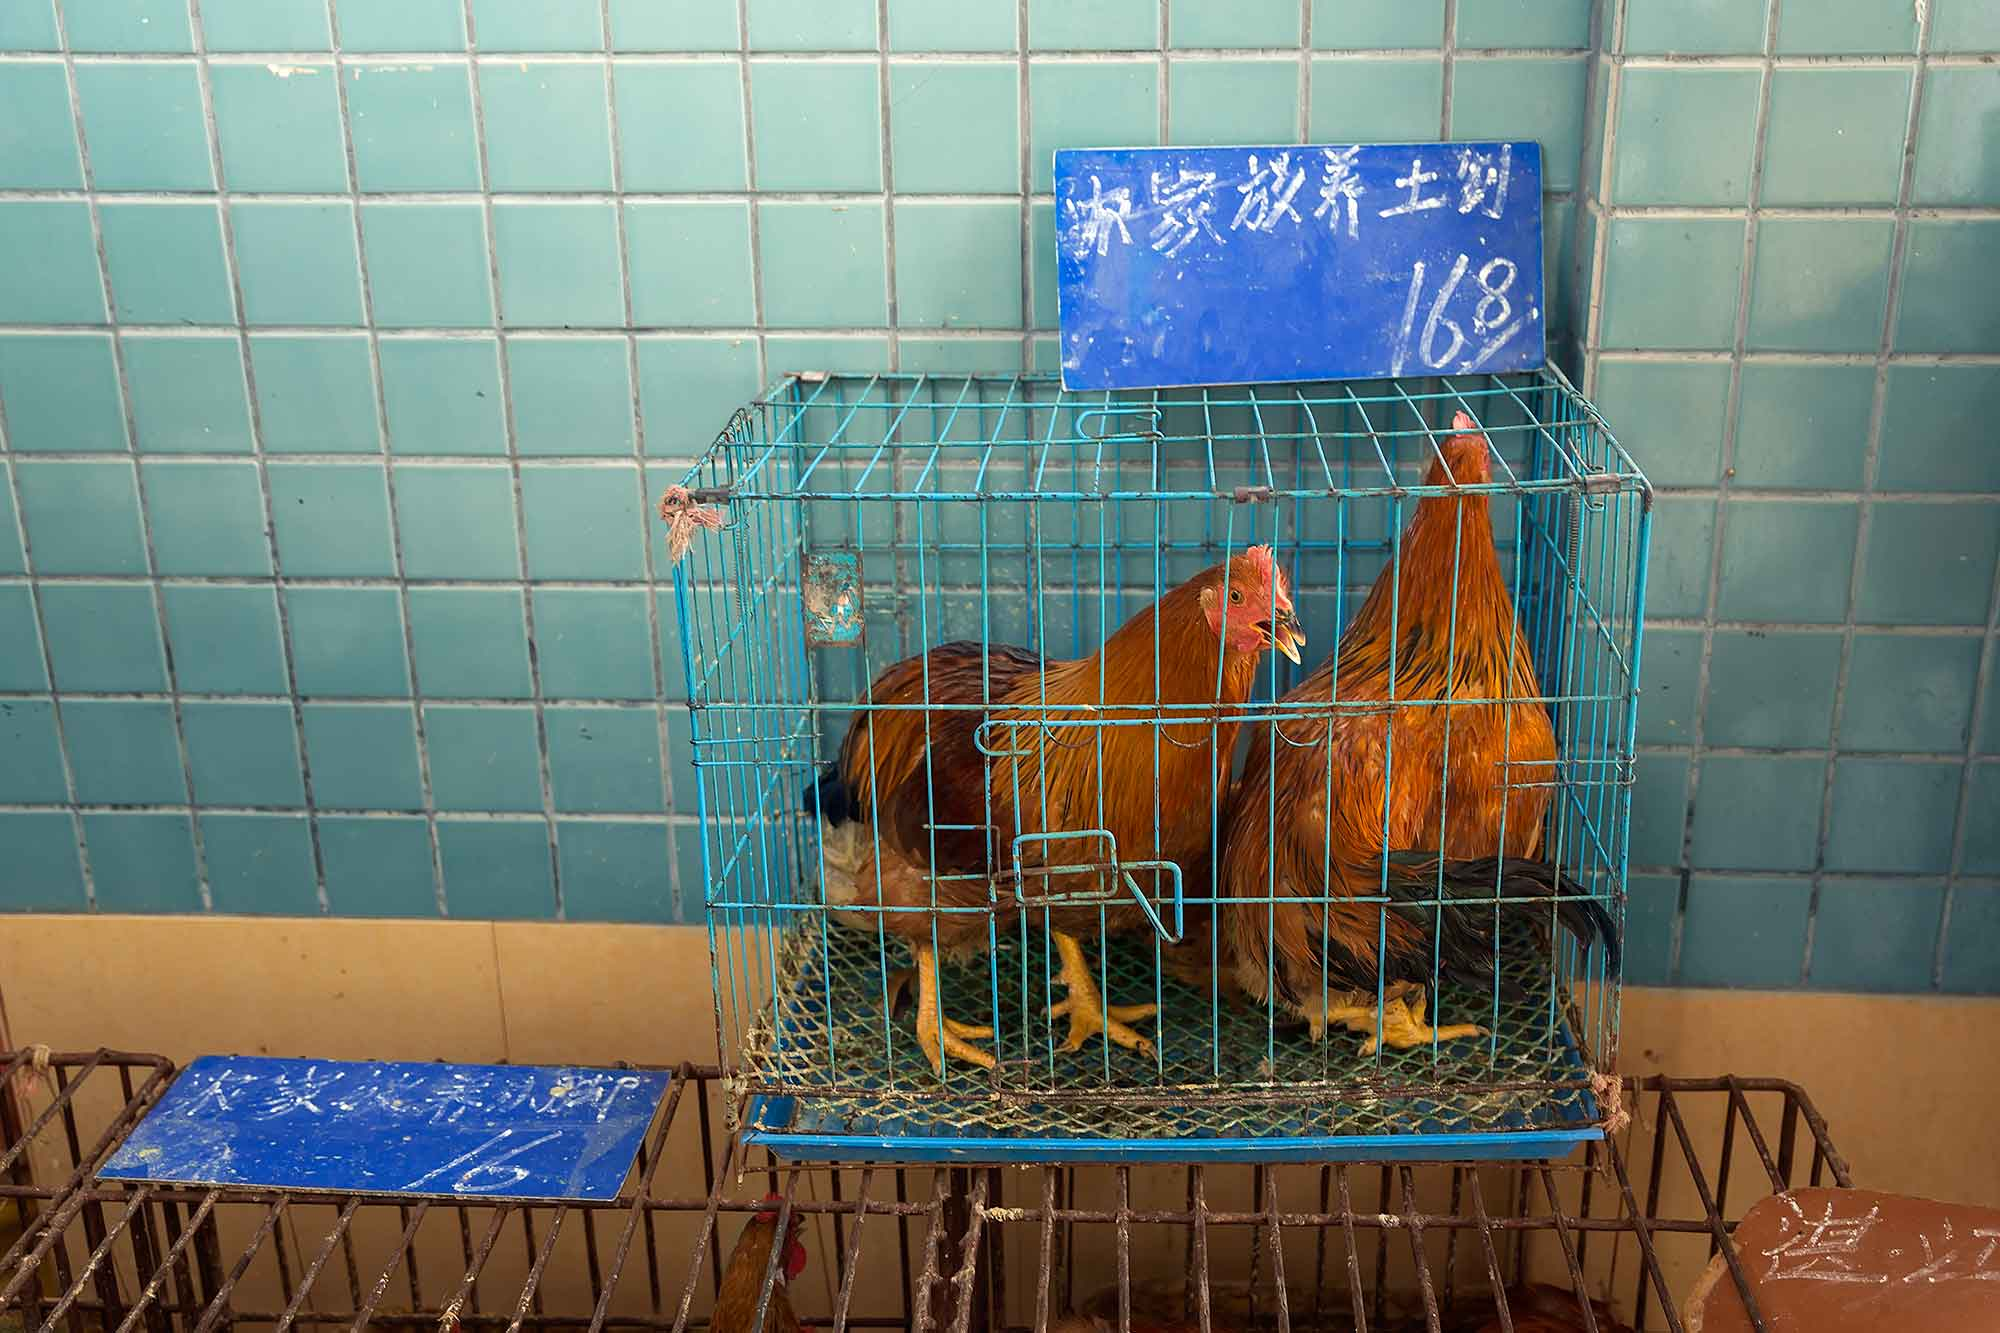 A caged rooster at a market in Guangzhou. © Ulli Maier & Nisa Maier